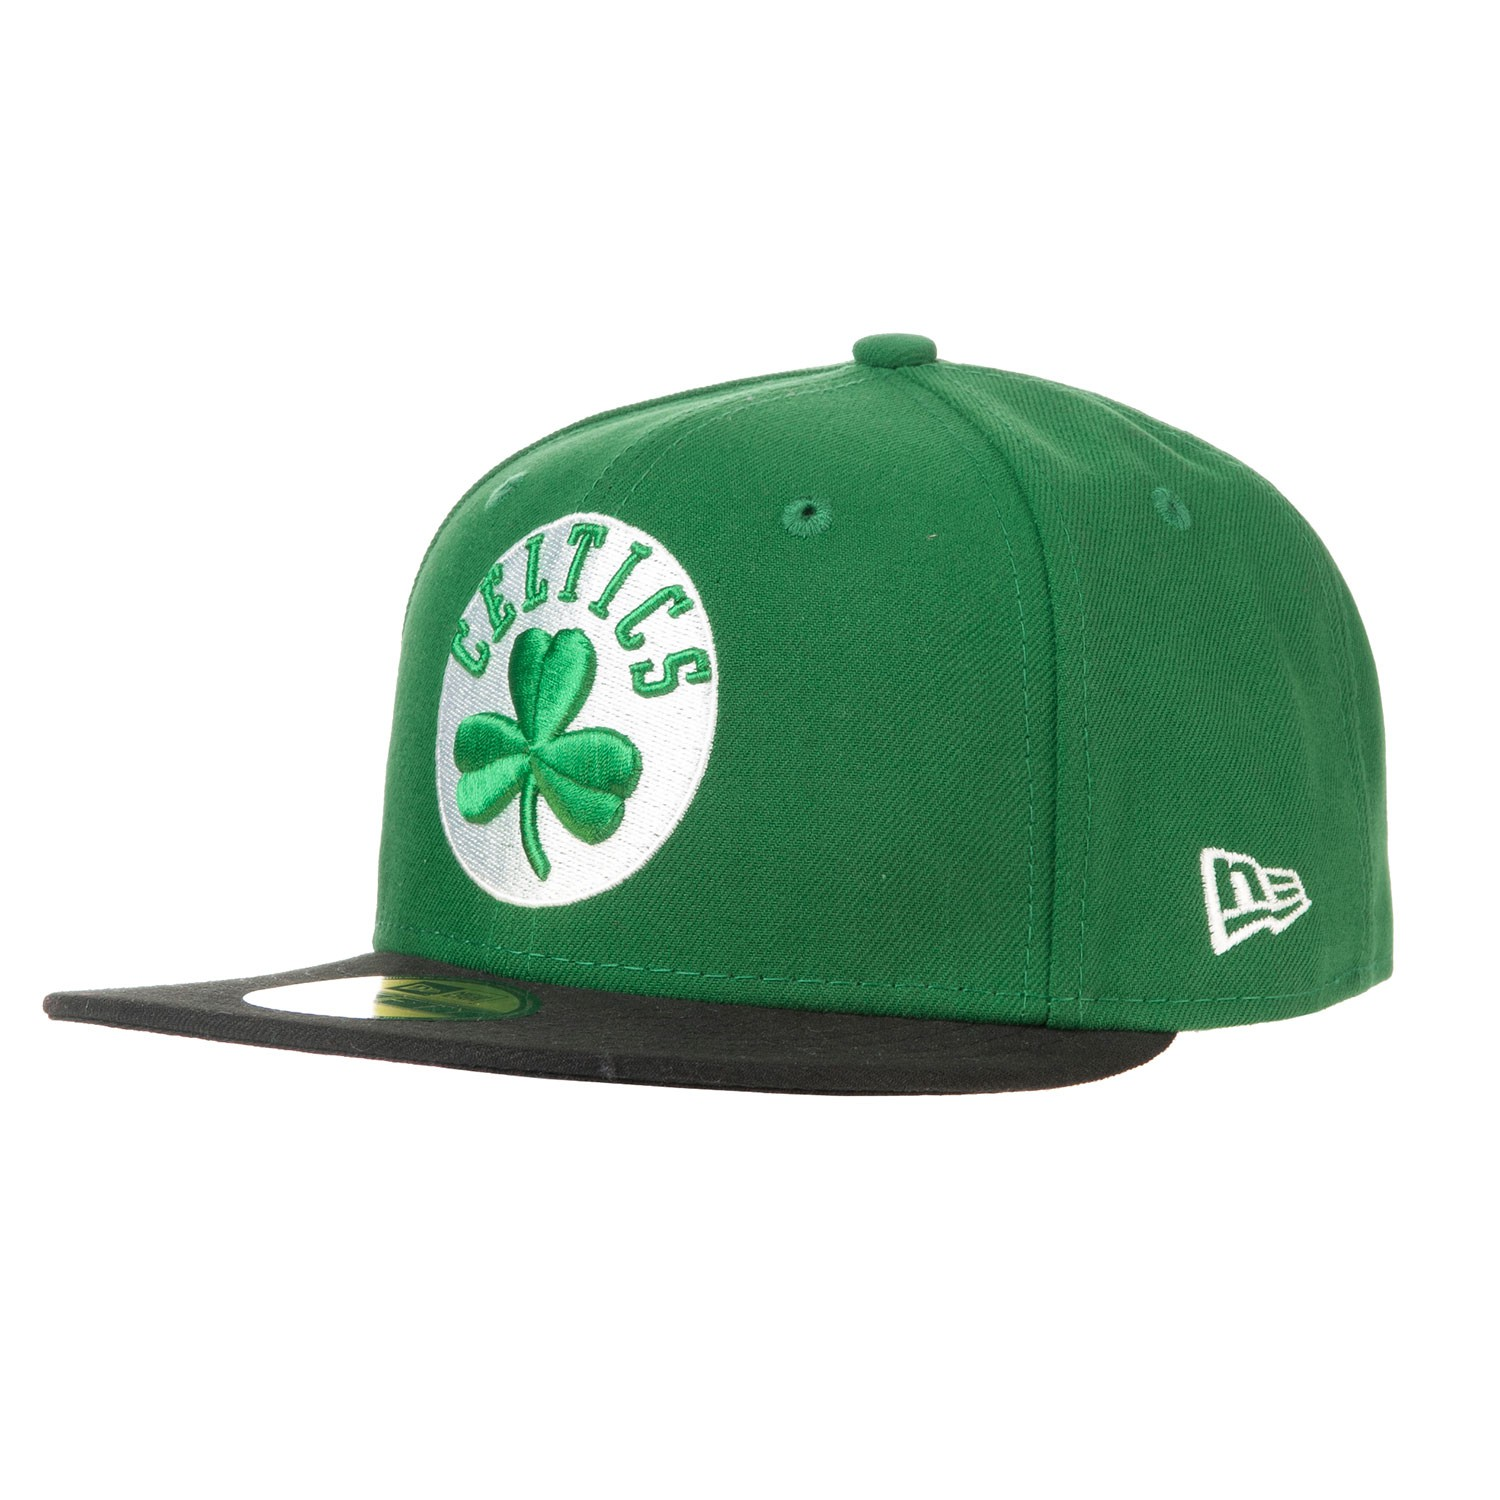 Kšiltovka New Era Boston Celtics 59Fifty Basic green/black